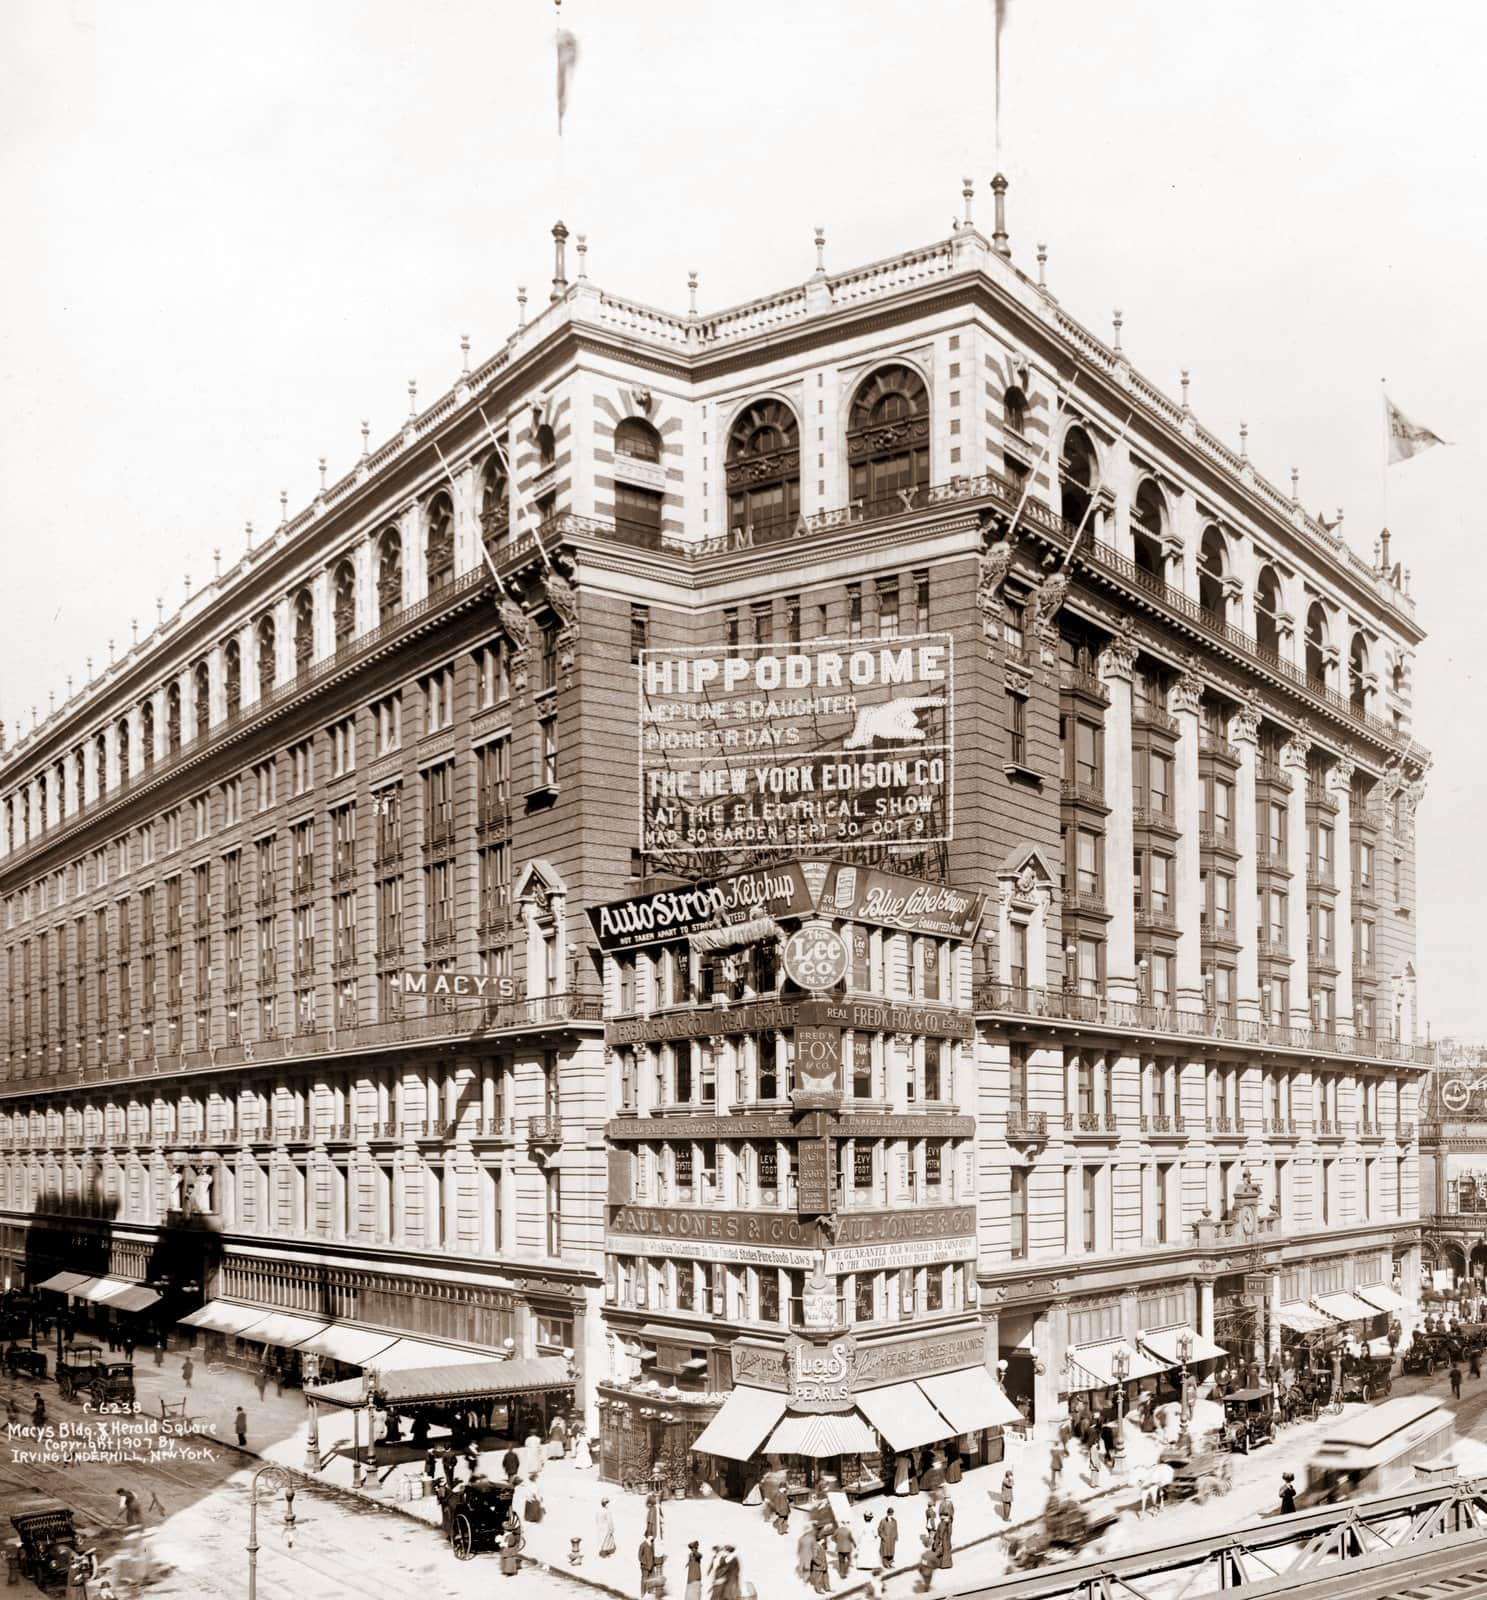 The New York Macy's Building and Herald Square - 1907